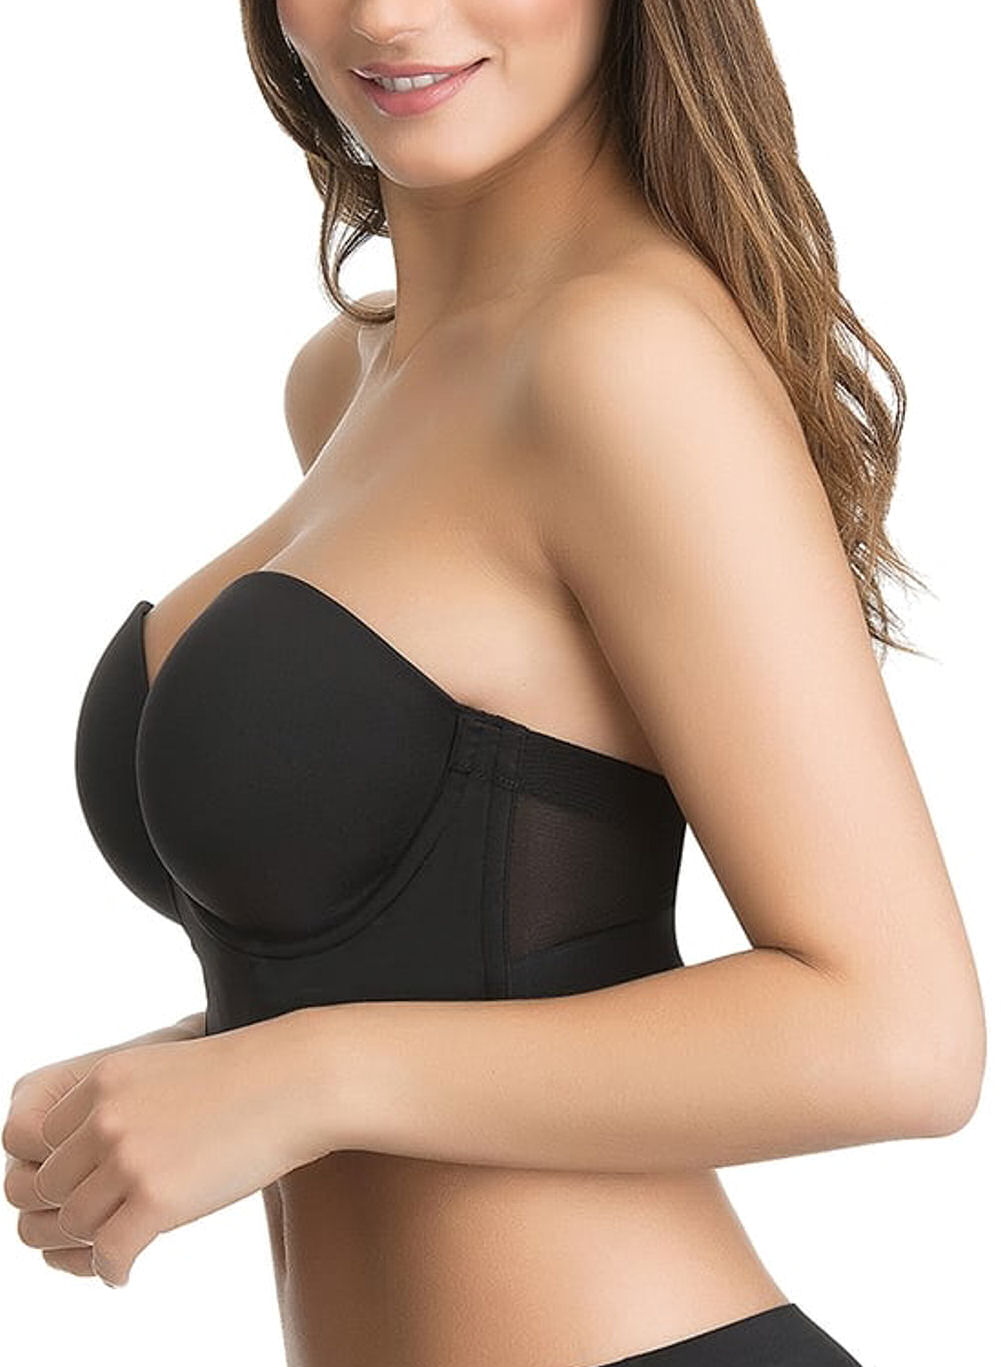 Ultimo-Longline-Low-Back-Bra-Push-Up-Strapless-0413-Underwired-Moulded-Foam-Cups thumbnail 5